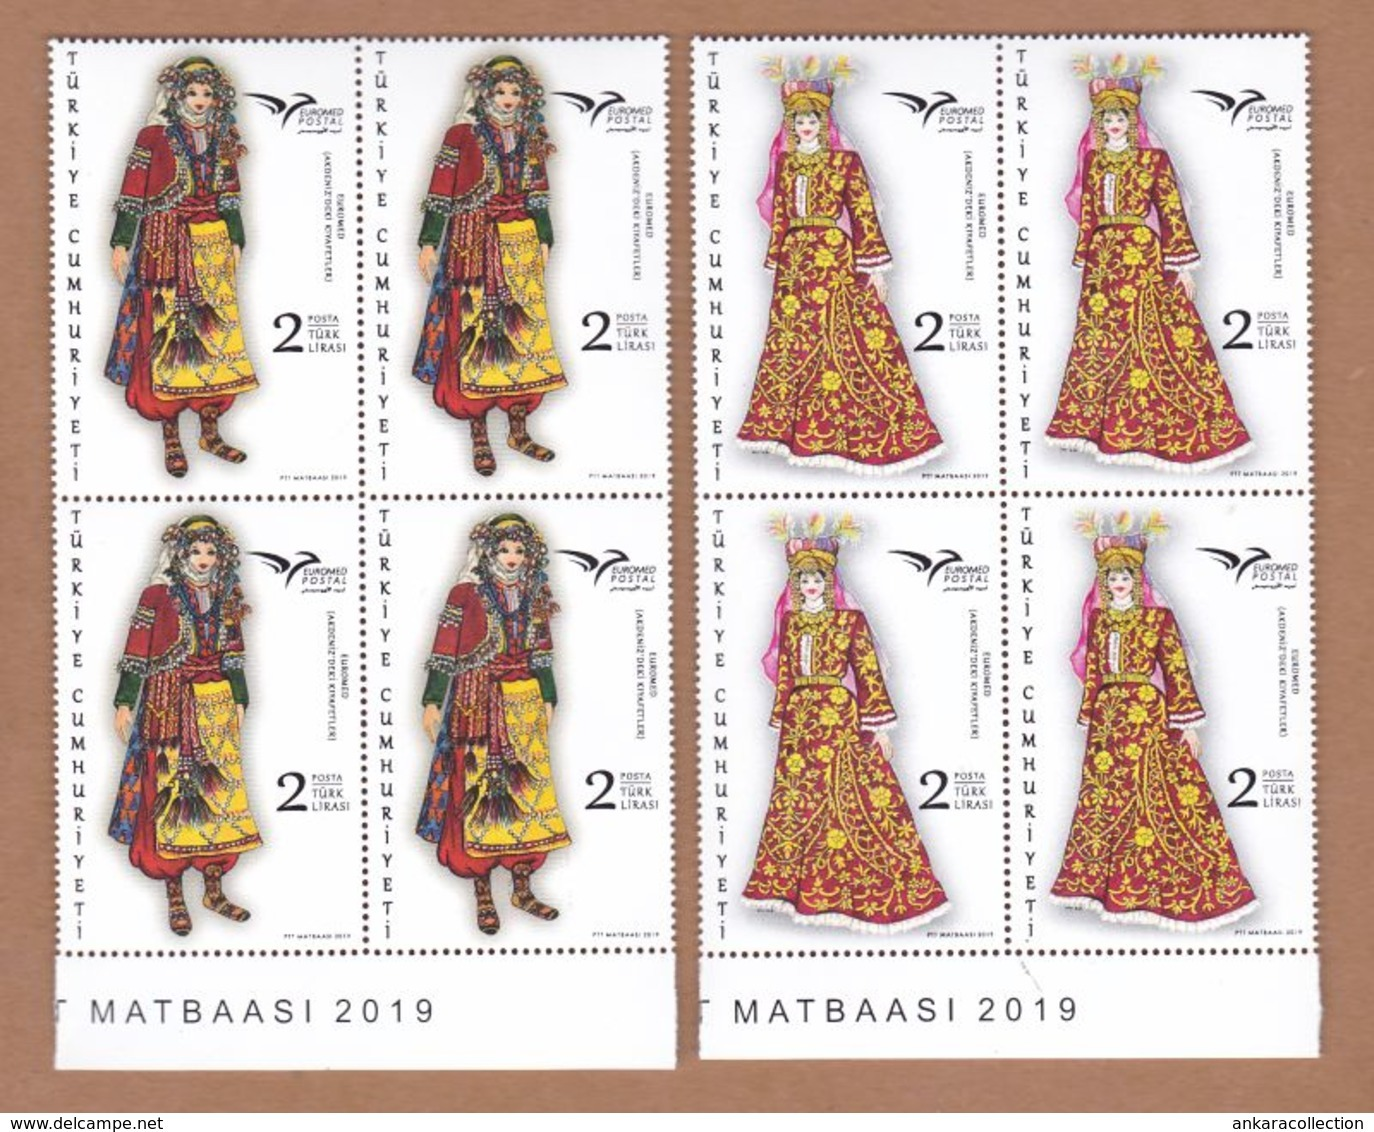 AC - TURKEY STAMP - EUROMED COSTUMES USED IN MEDITERRANEAN MNH BLOCK OF FOUR 08 JUNE 2019 - 1921-... Republic